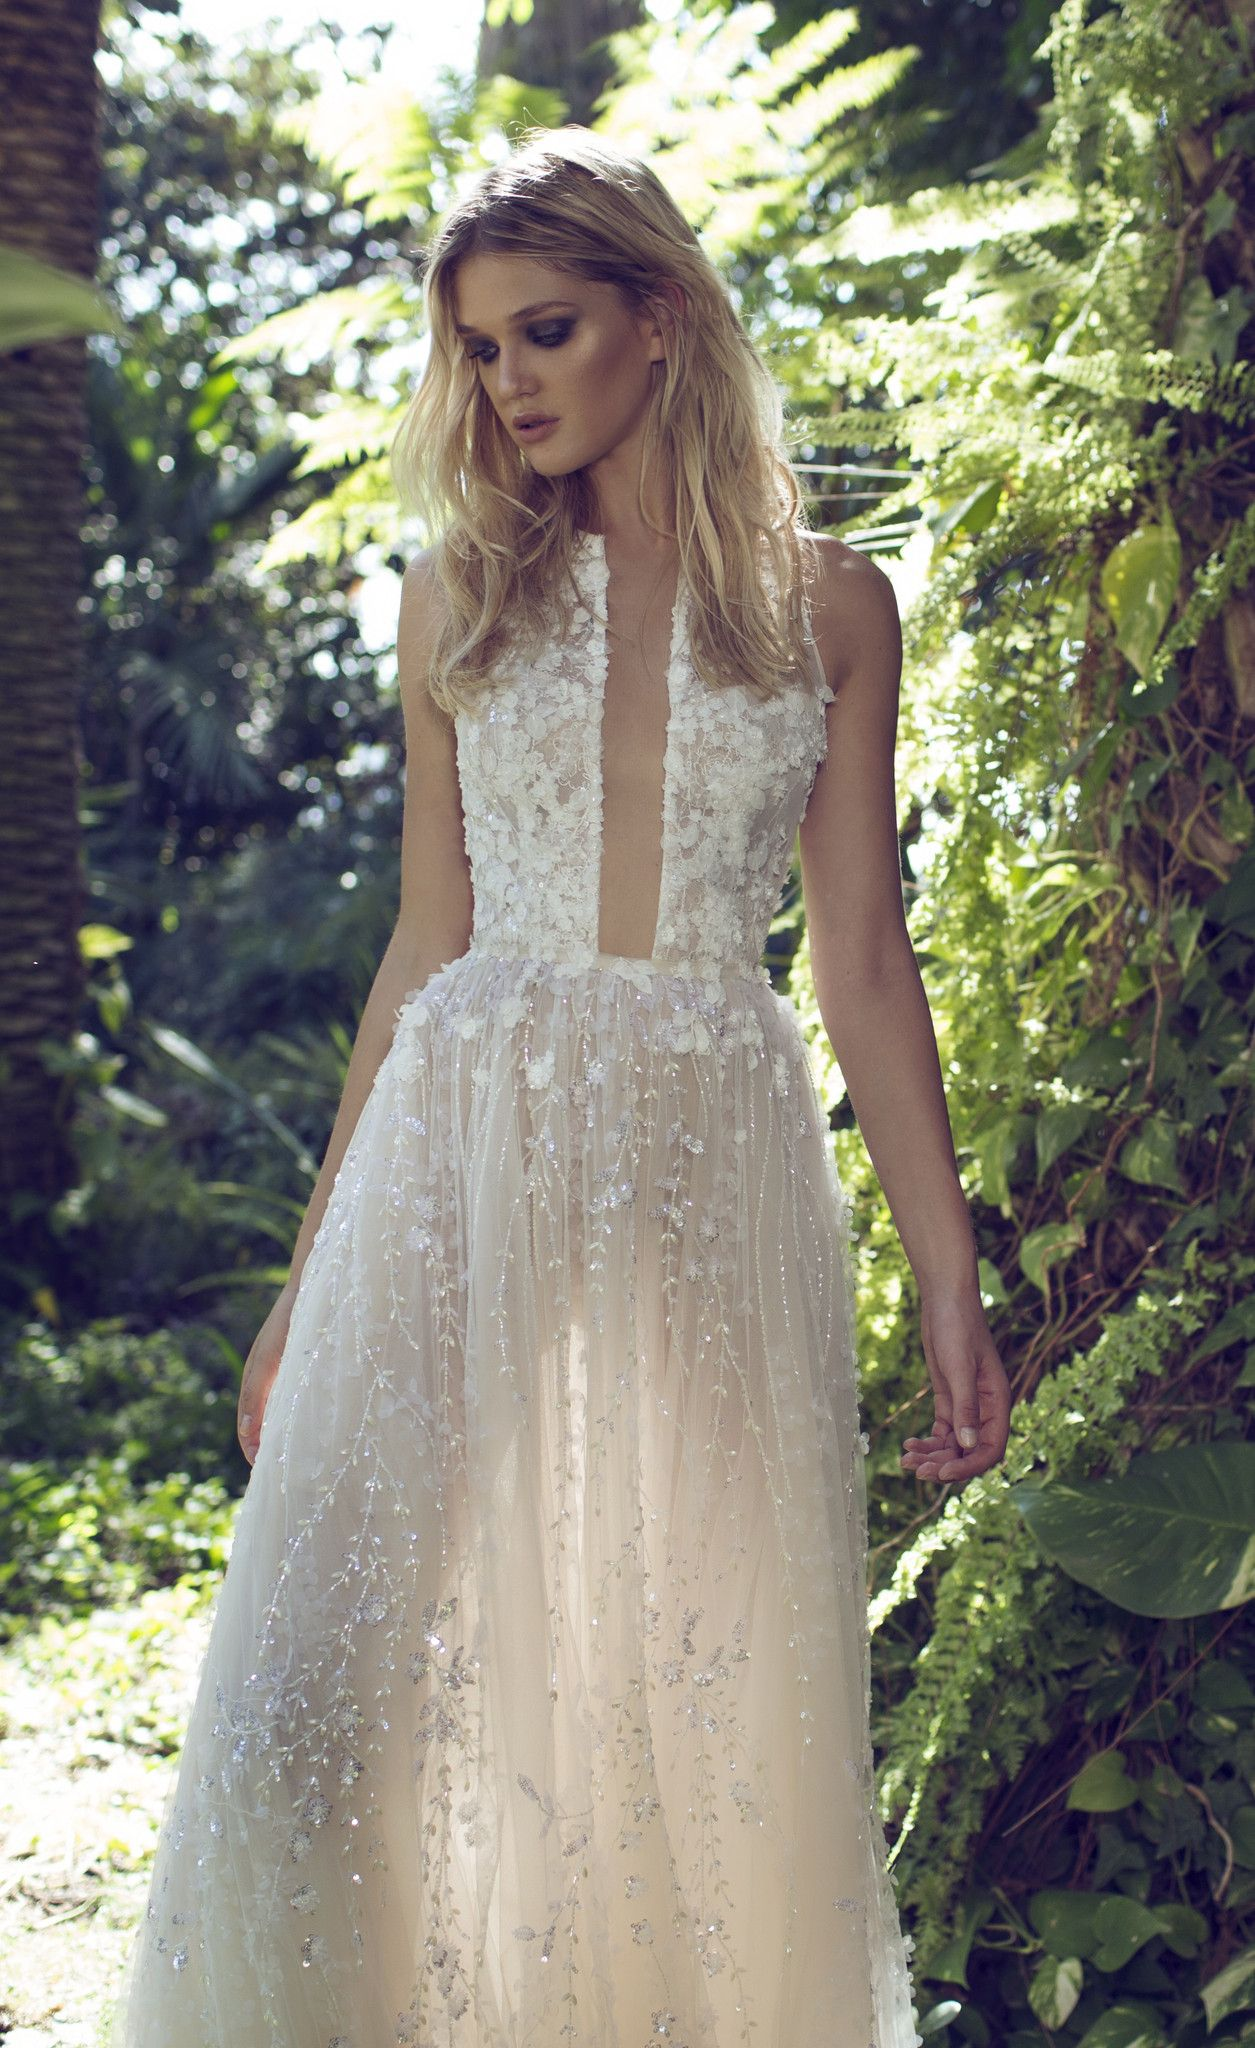 Beautiful Floaty Embellished Lace Wedding Dress With Beaded And Flower Details Skyler By Limor Rosen